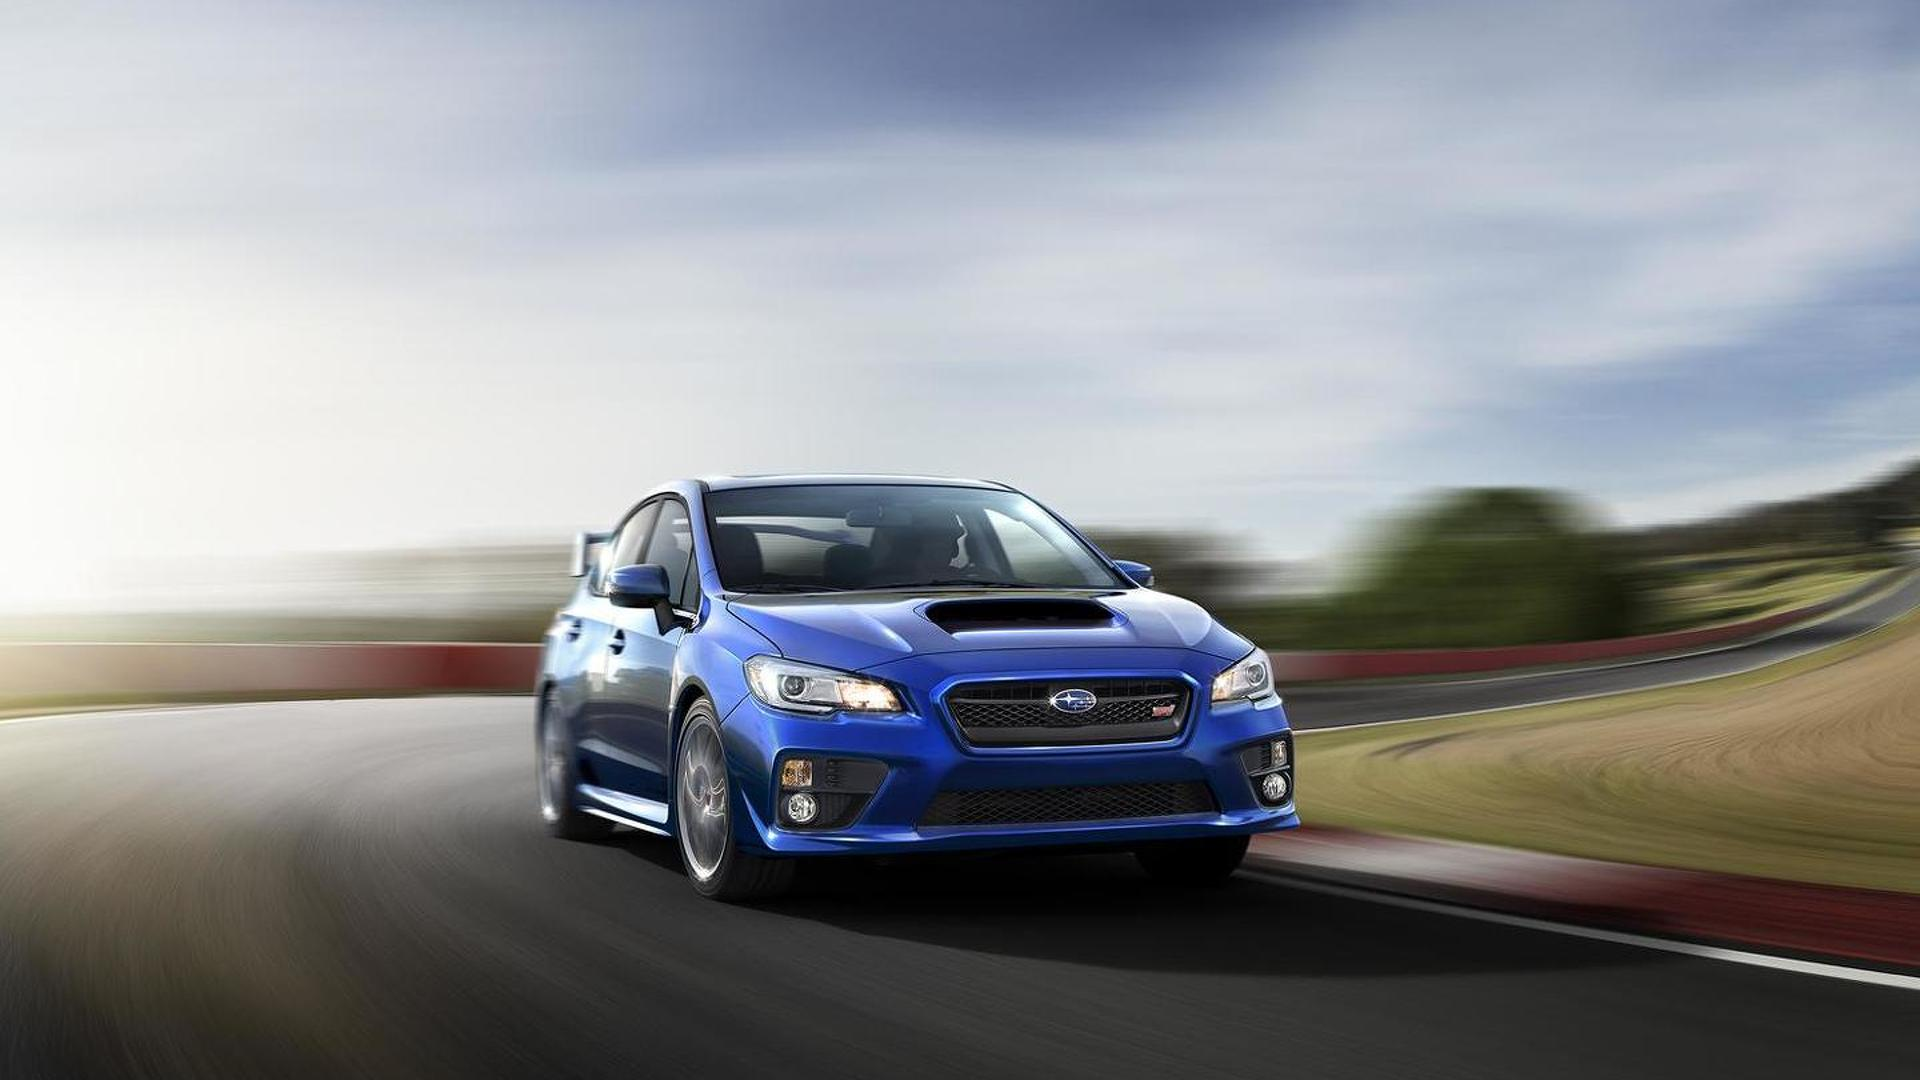 2017 subaru wrx wrx sti priced from 26 695. Black Bedroom Furniture Sets. Home Design Ideas